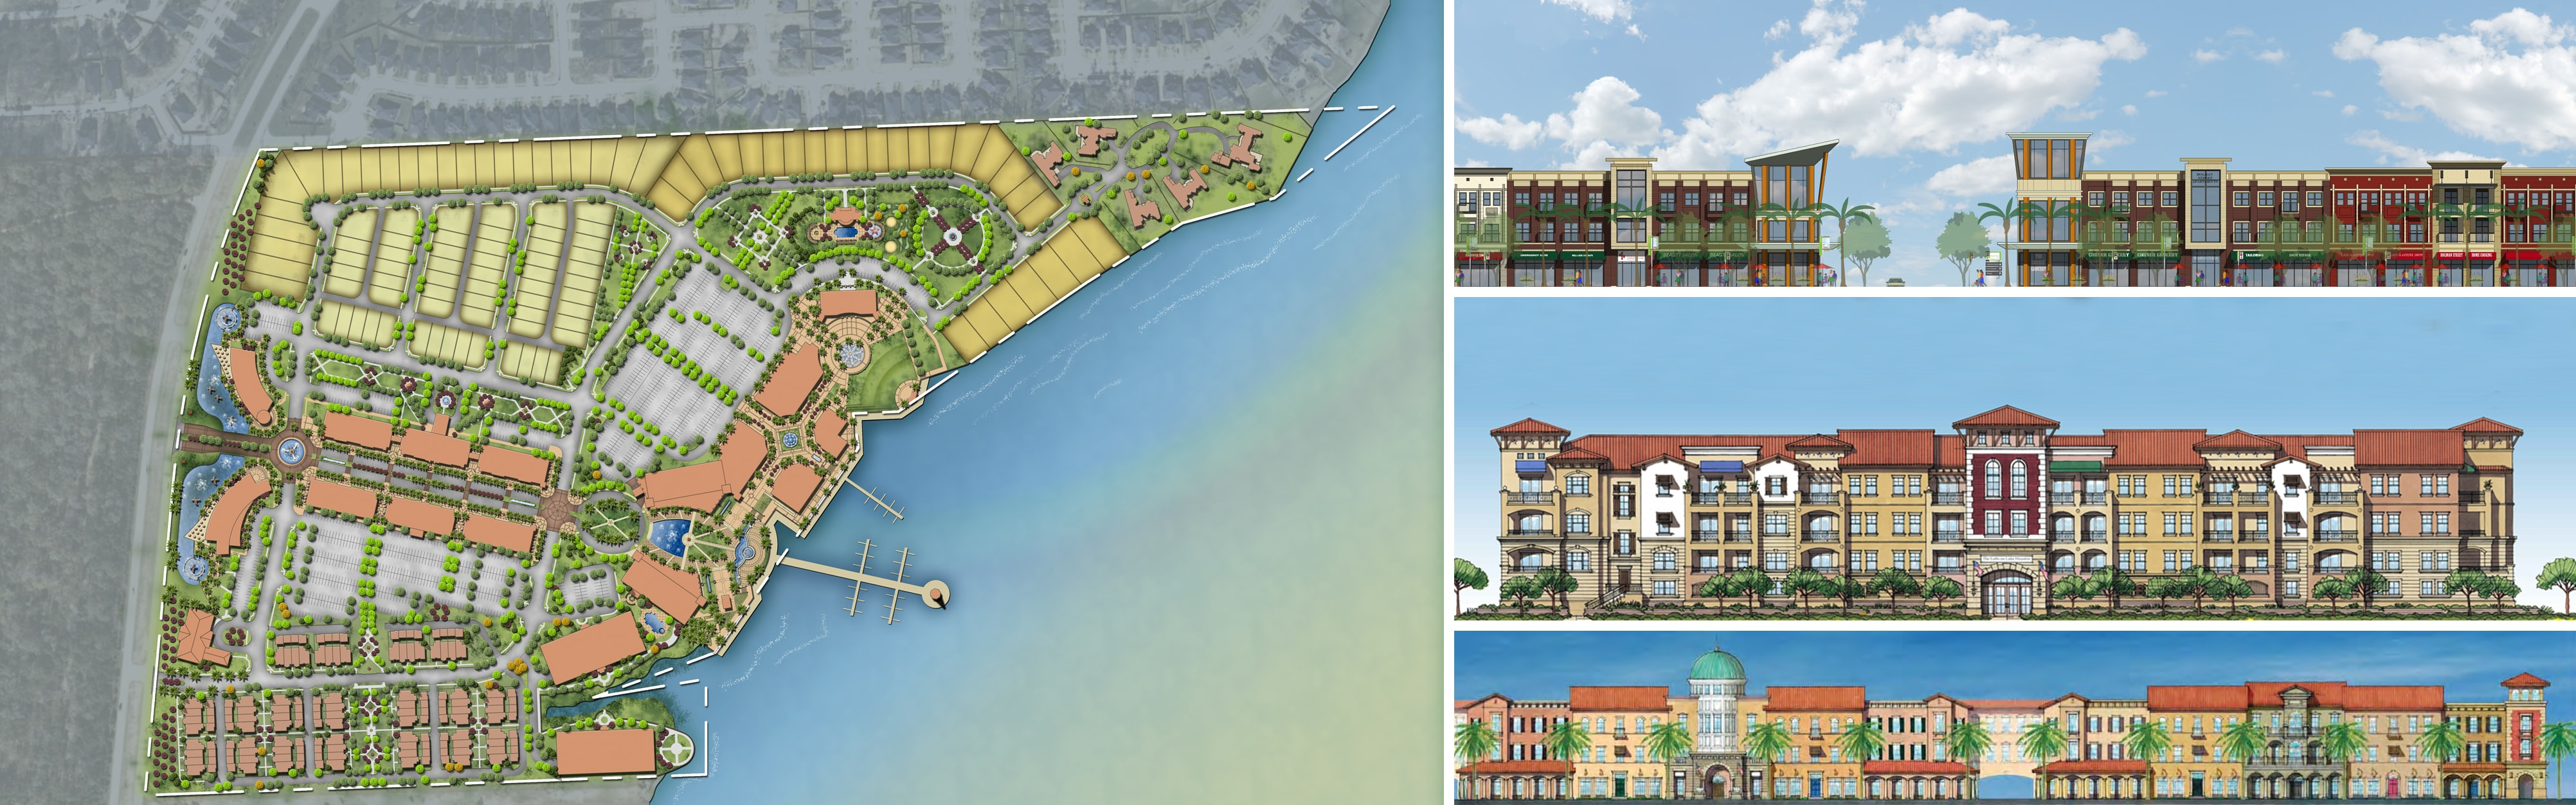 Master planned community architecture design